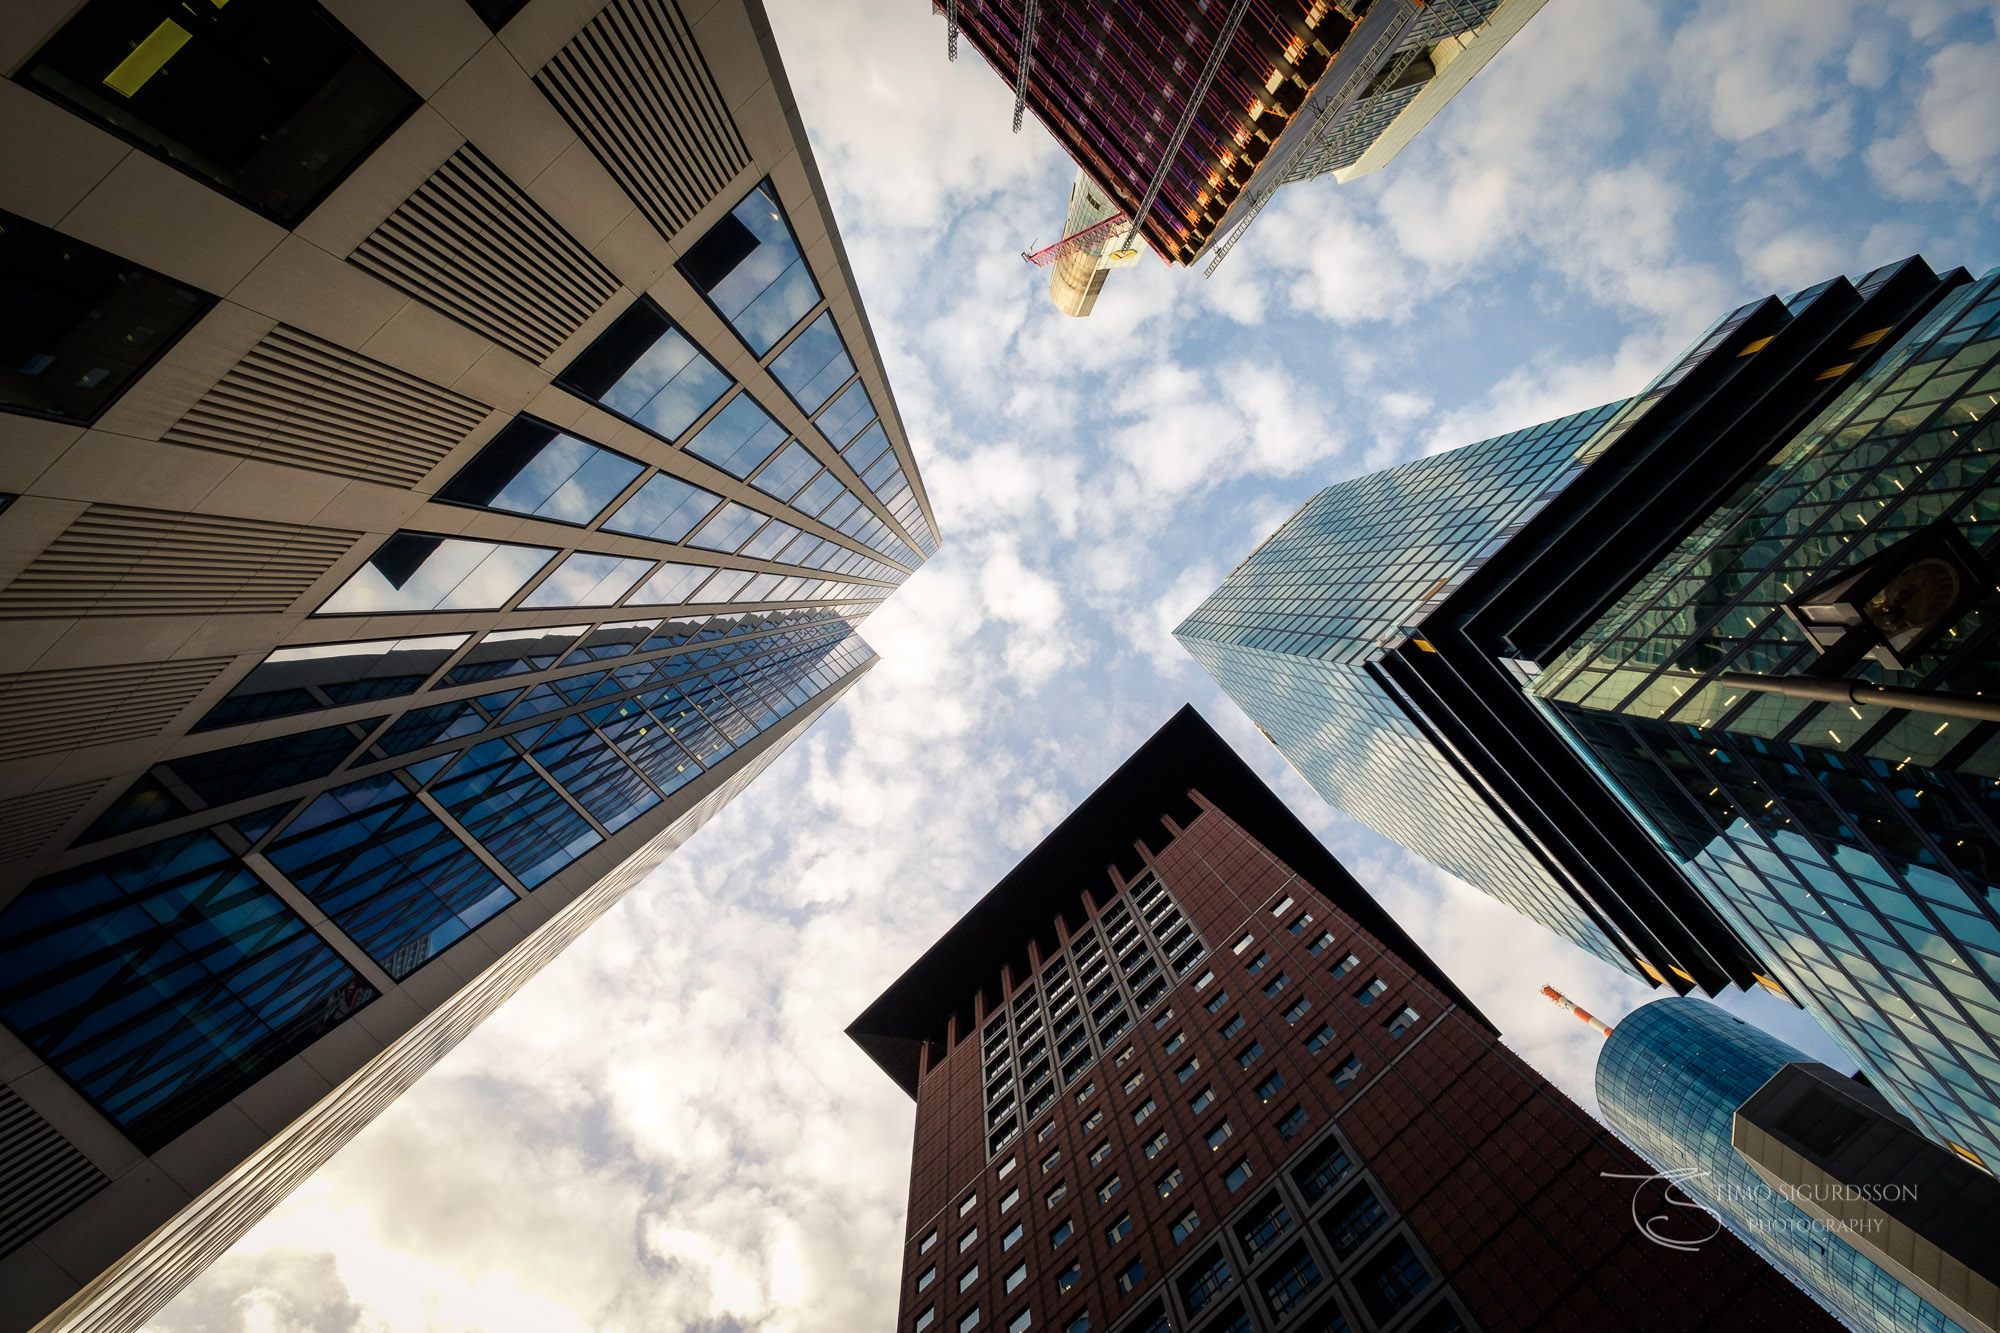 Frankfurt, Germany. Skycrapers in the financial district.